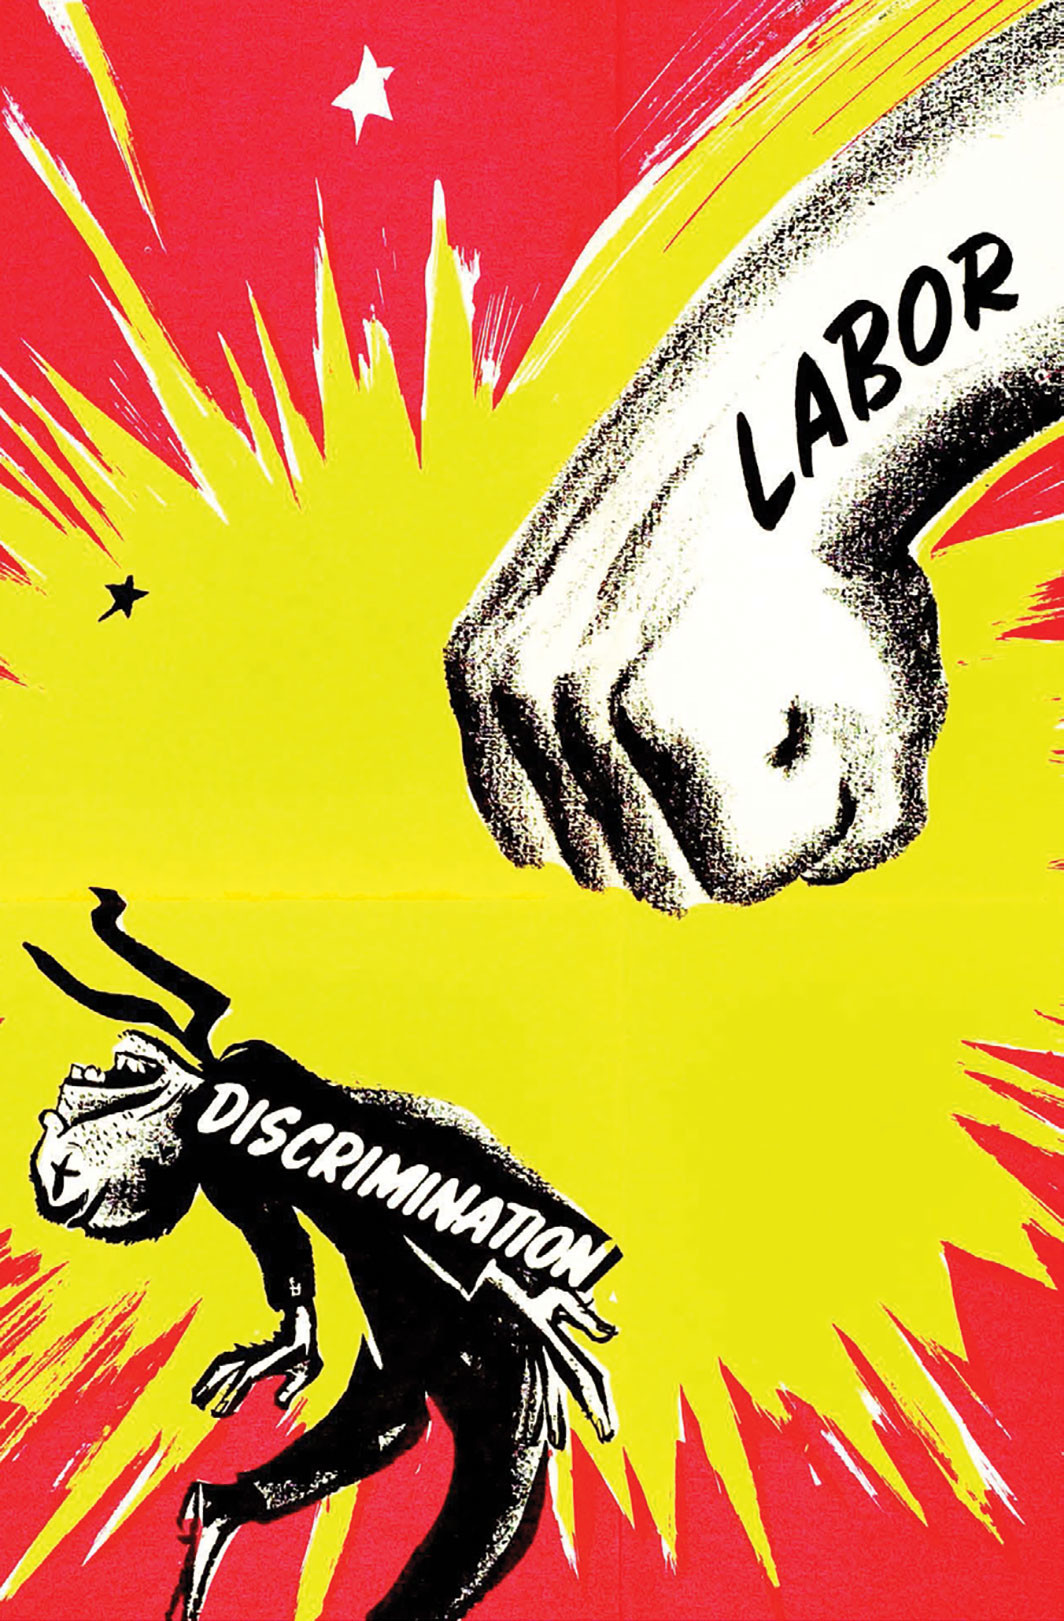 Congress of Industrial Organizations' Committee to Abolish Discrimination poster, 1951. Bernard Seaman/Tamiment Library, NYU